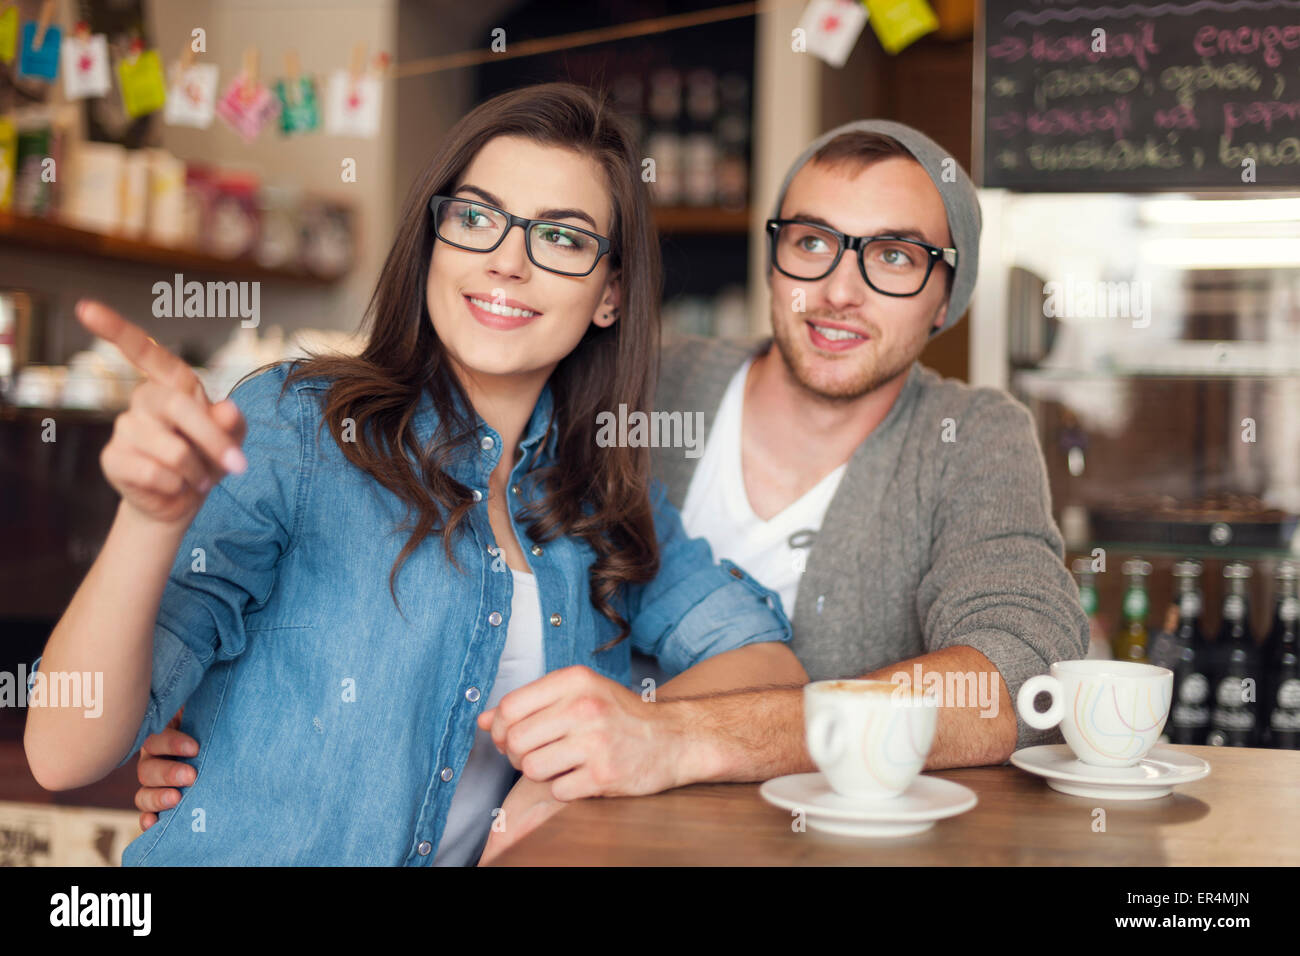 Hipster young couple at cafe. Krakow, Poland - Stock Image